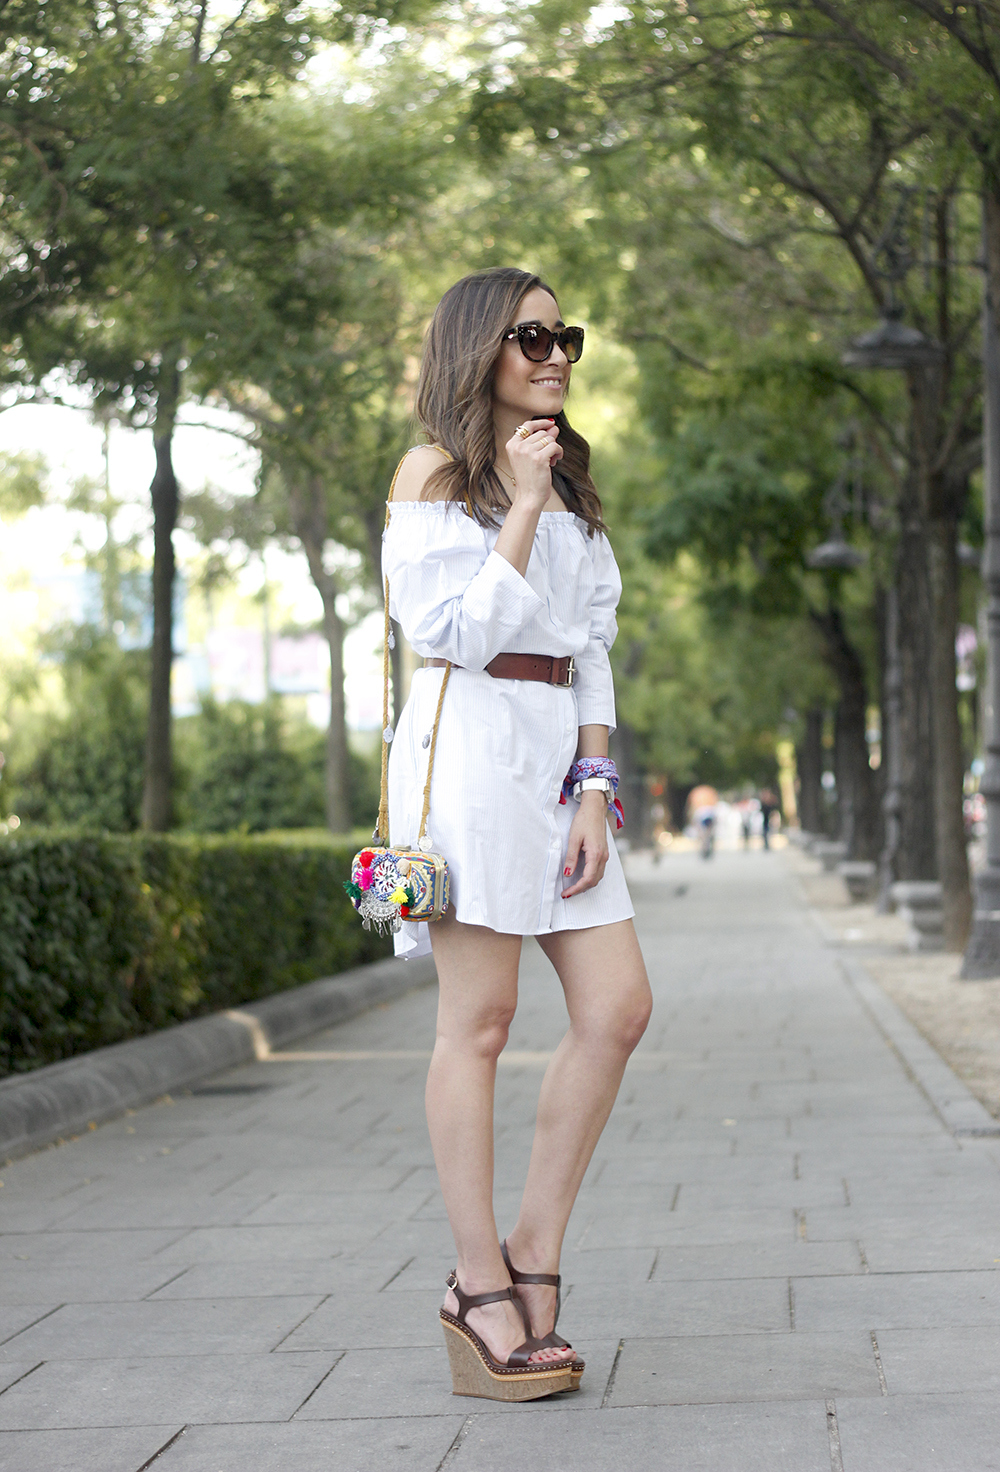 Off the shoulders striped dress belt summer outfit wedges sunnies style03